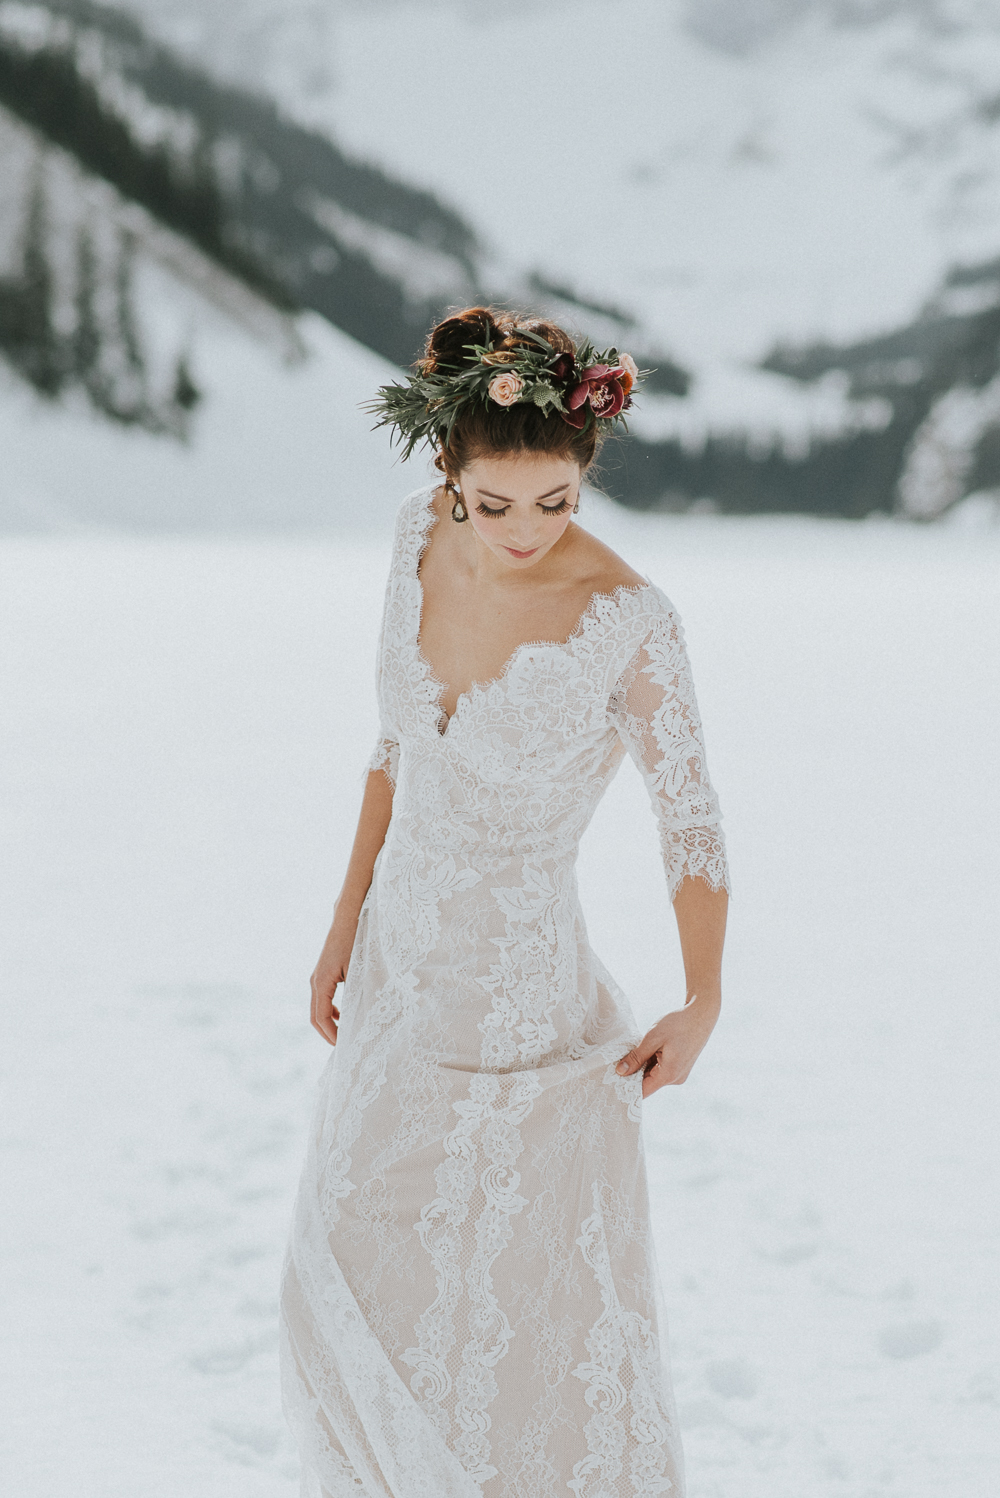 Lake Louise Winter Wedding